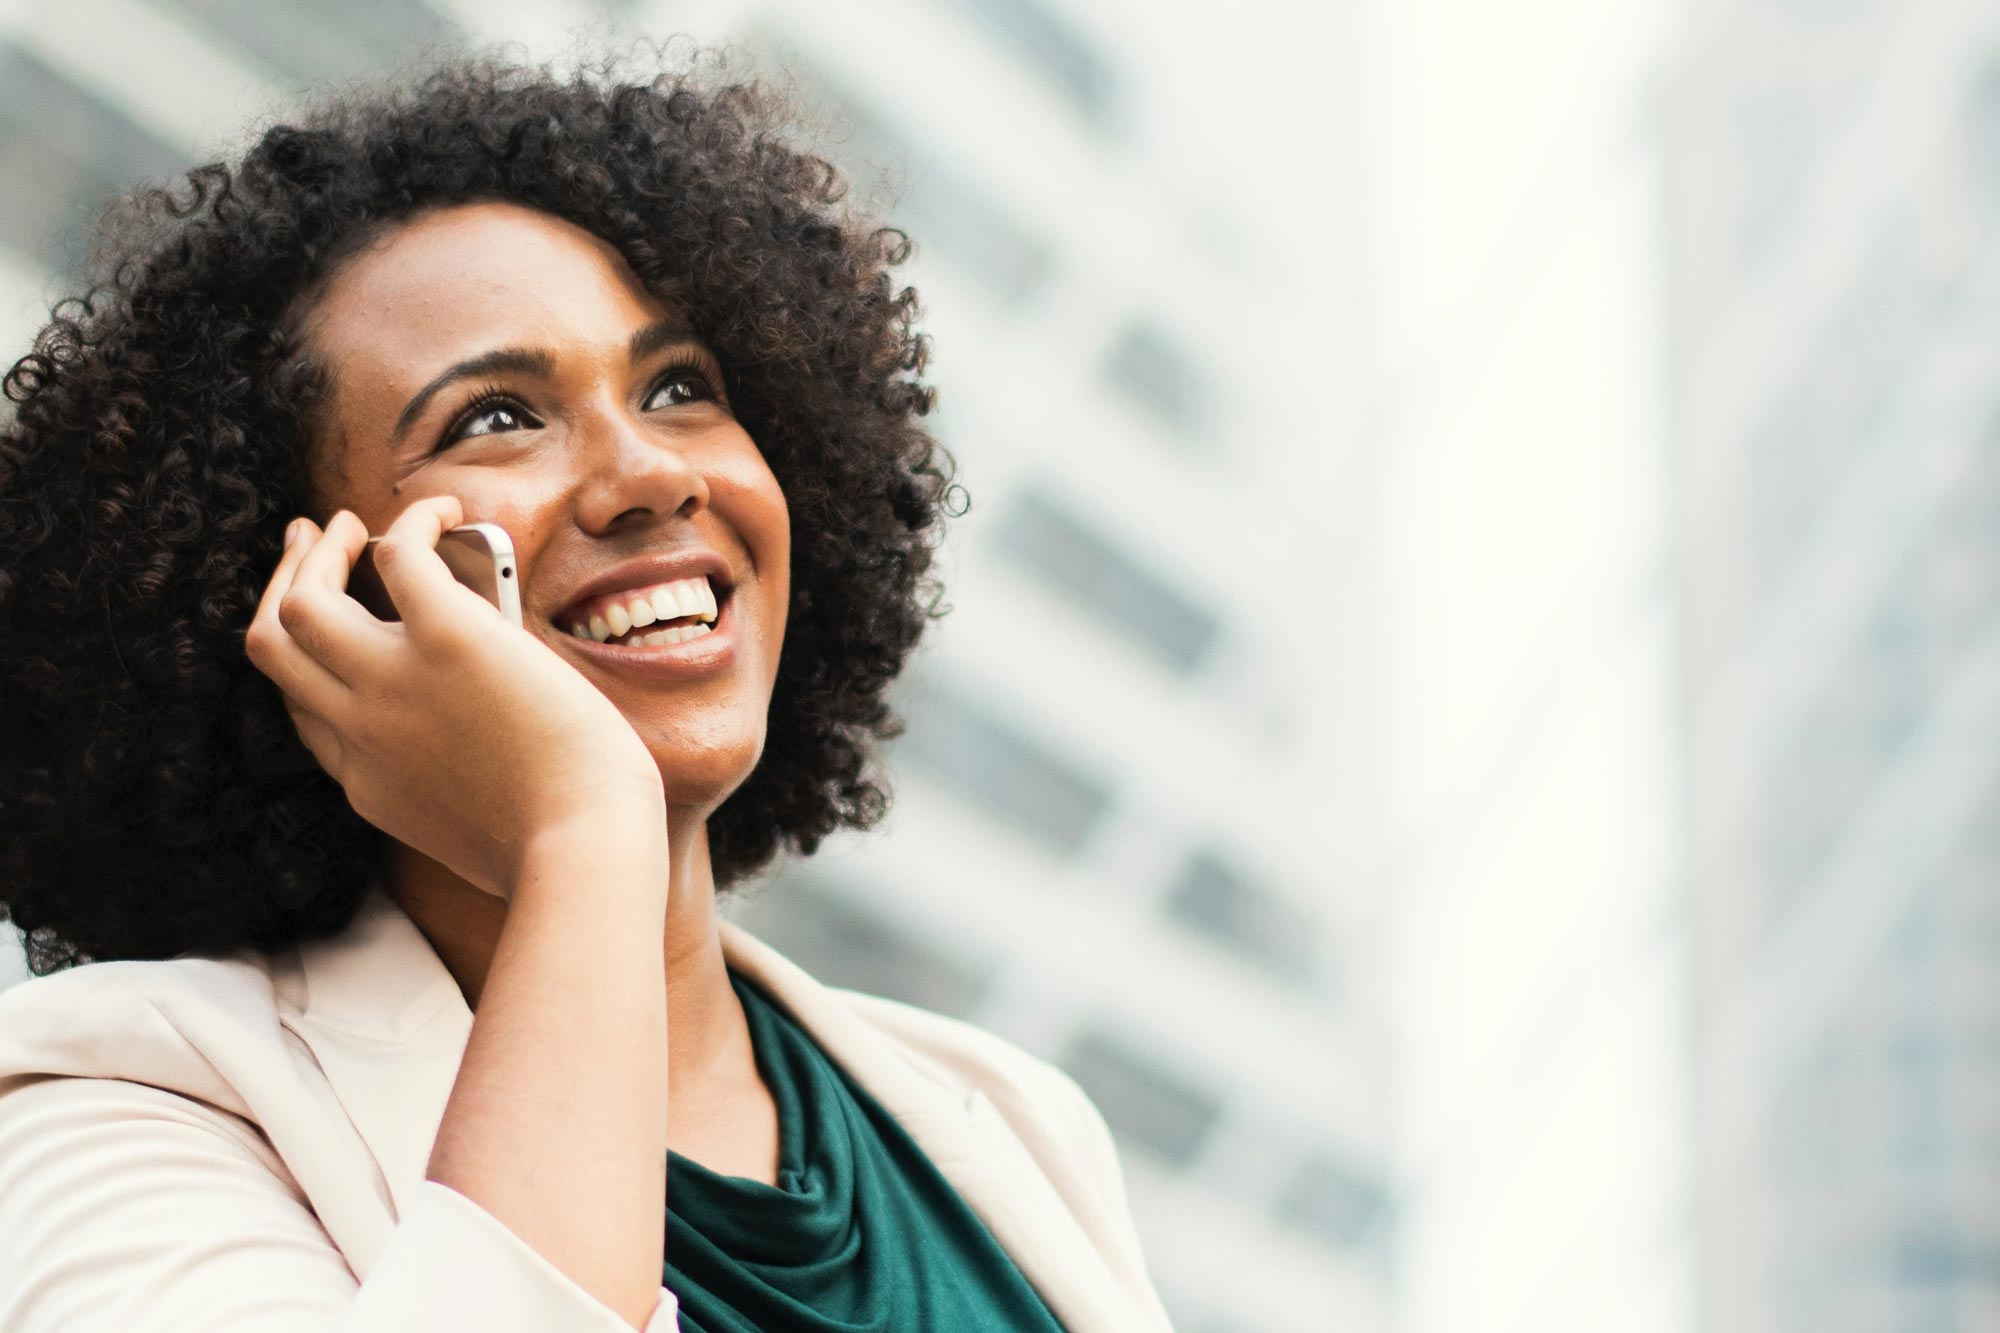 How to Improve Customer Service and Get More Referrals